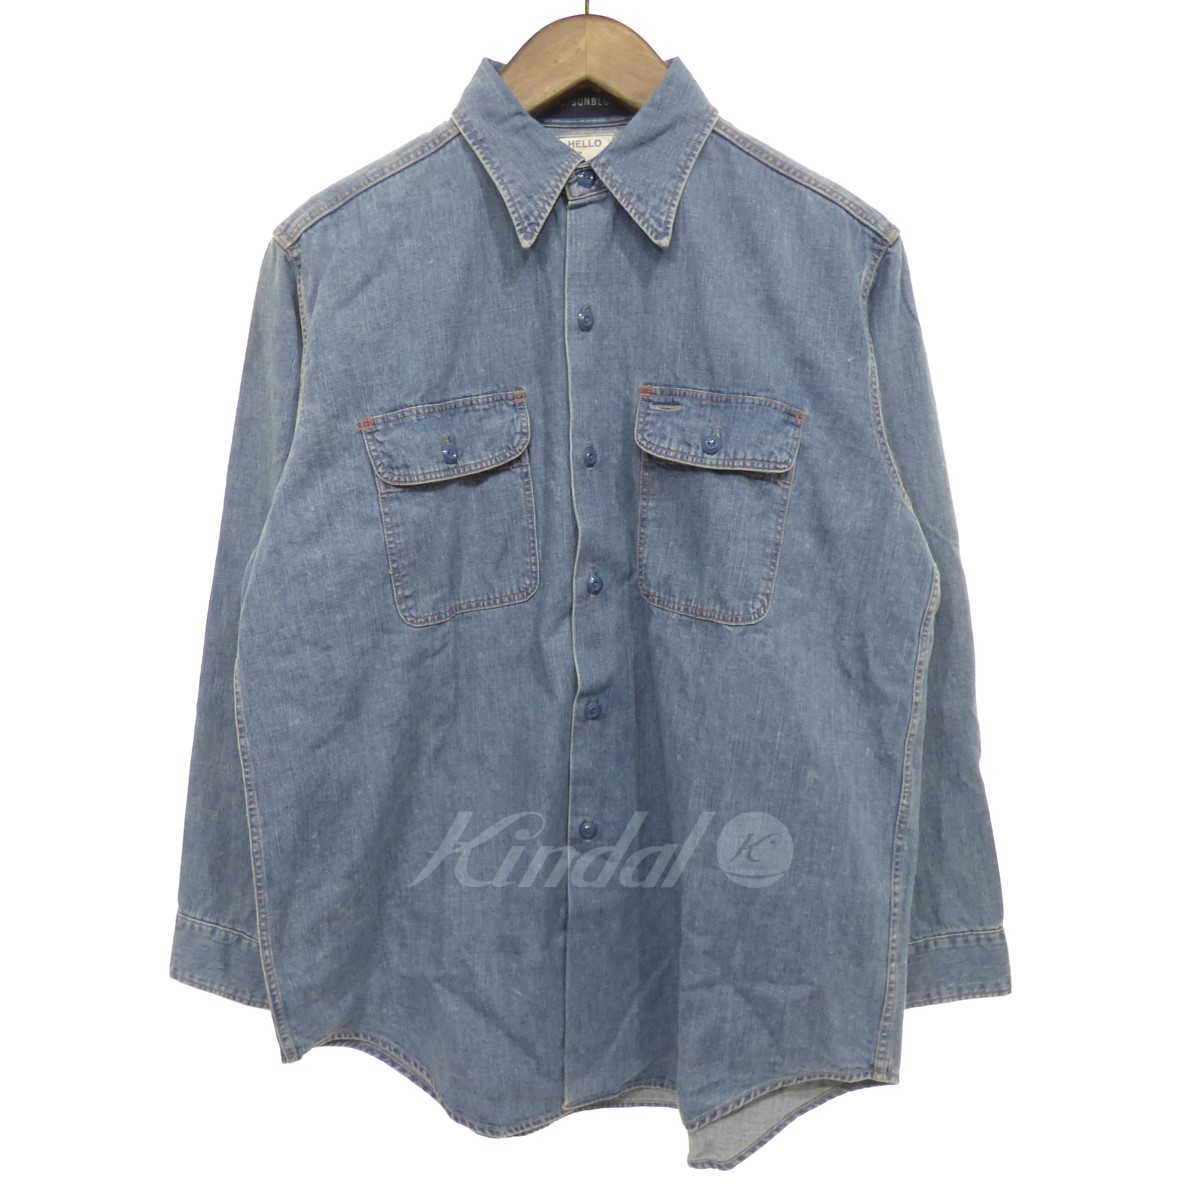 【中古】MADISON BLUE 【2017S/S】 HAMPTON SHIRT D/DENIM デニムシャツ 【送料無料】 【098216】 【KIND1499】